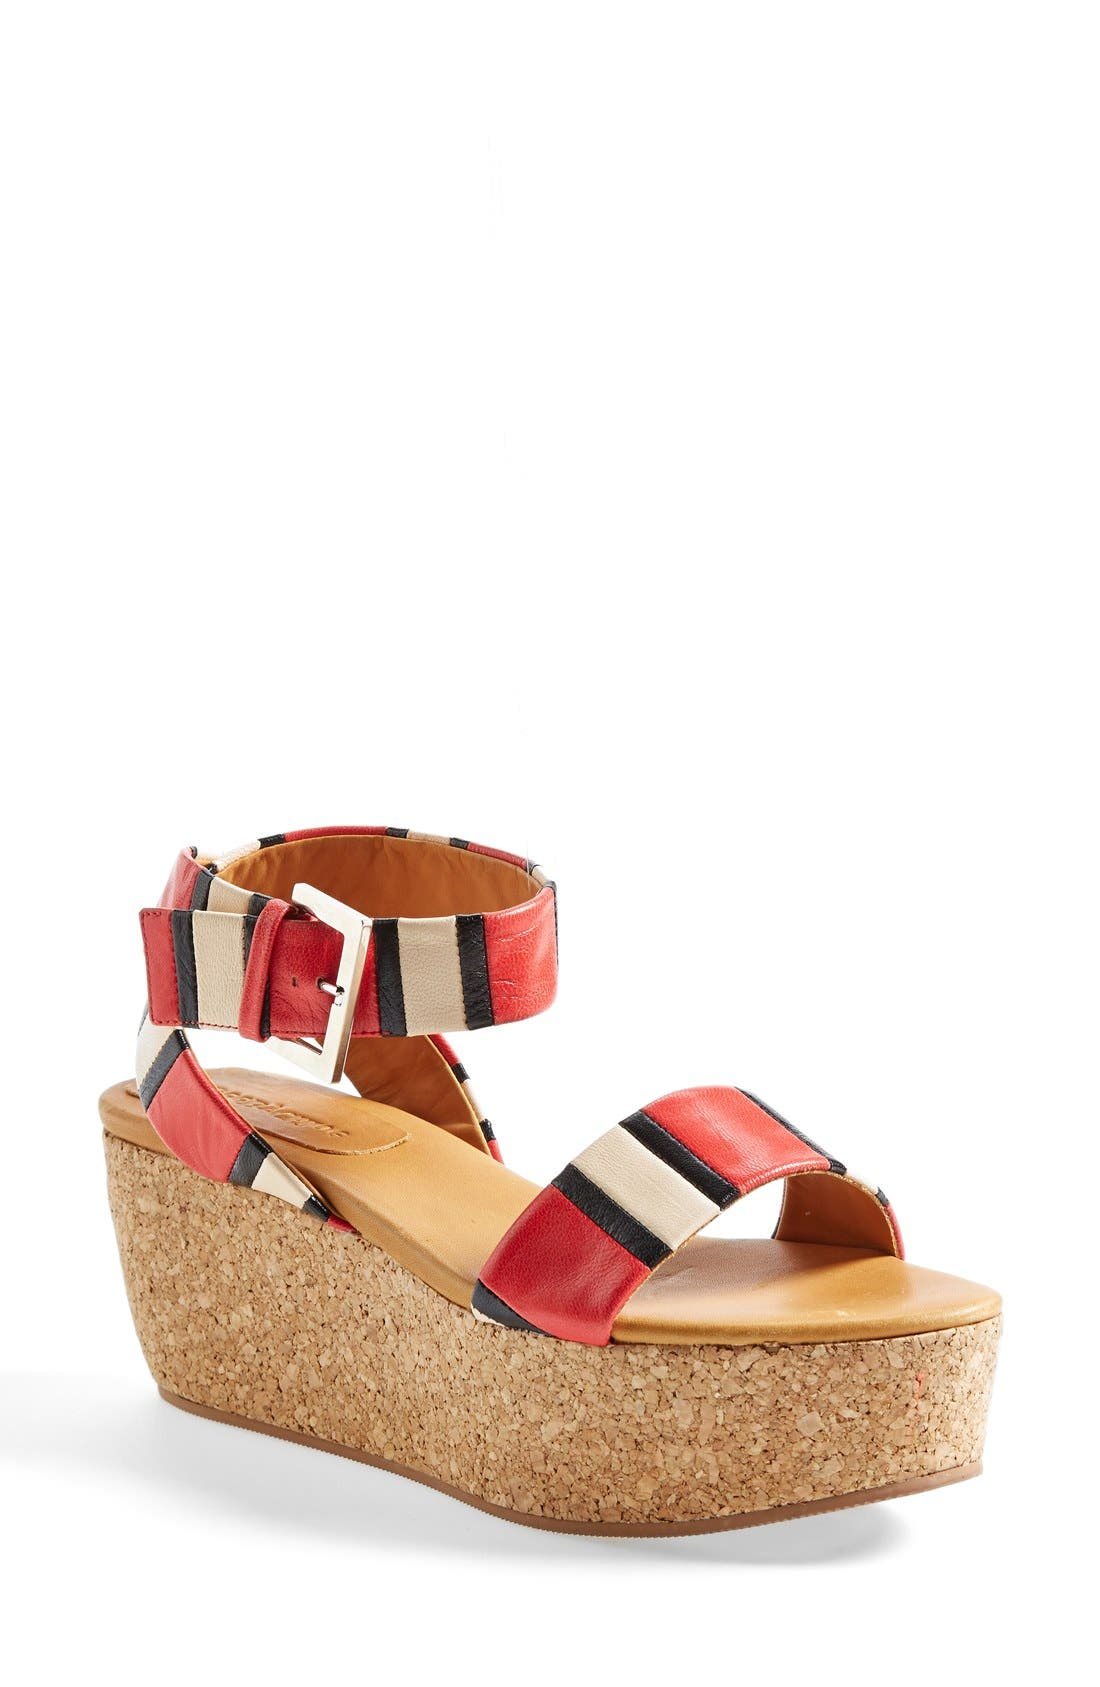 Alternate Image 1 Selected - See by Chloé 'Patti' Stripe Wedge Sandal